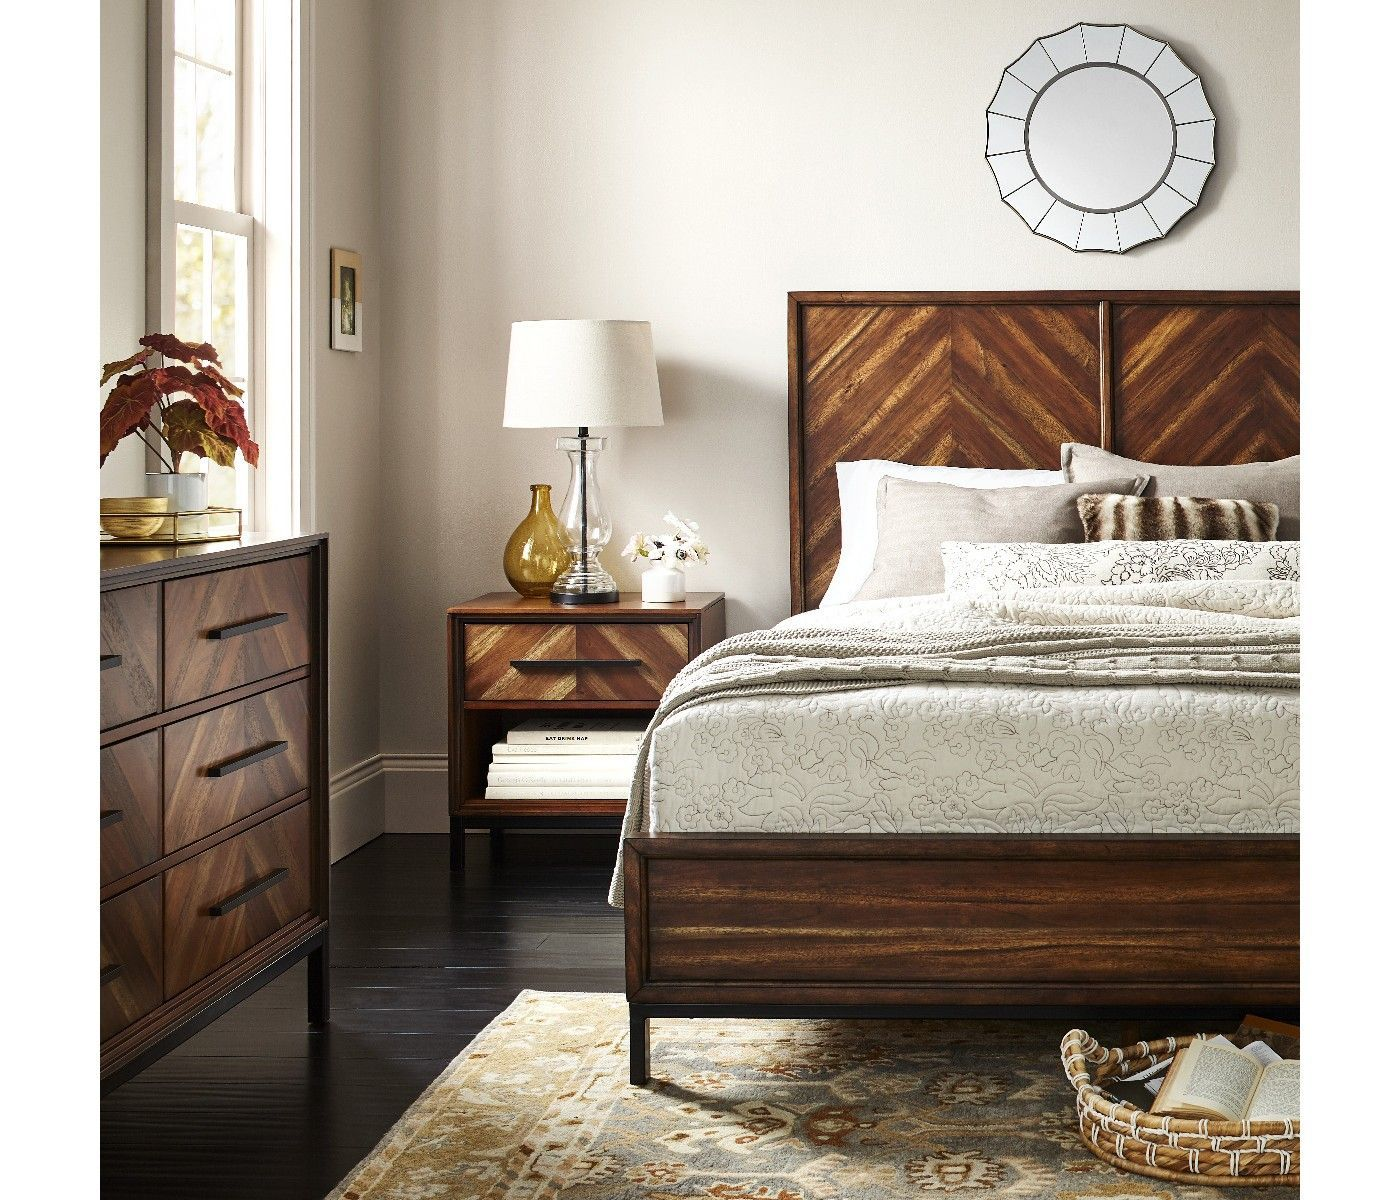 Ceiling Design Look Up More Often 28 The Mirror Above Bed Gives This Room So Much Character Love Natural Vibe